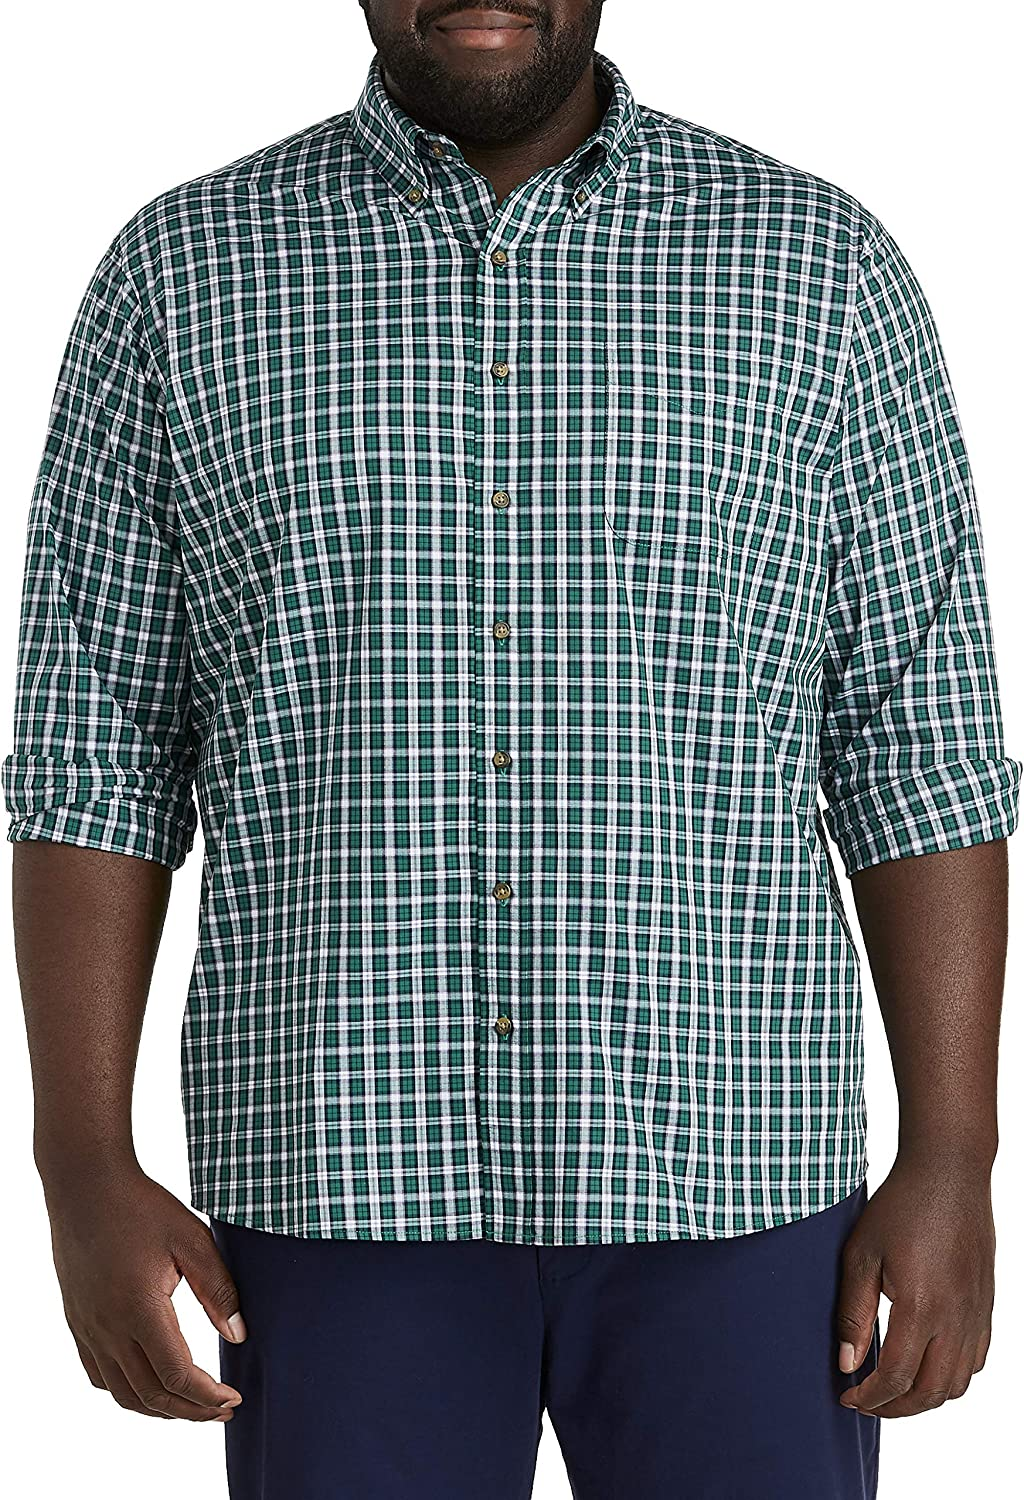 Harbor Bay by DXL Big and Tall Easy-Care Small Plaid Sport Shirt, Evergreen